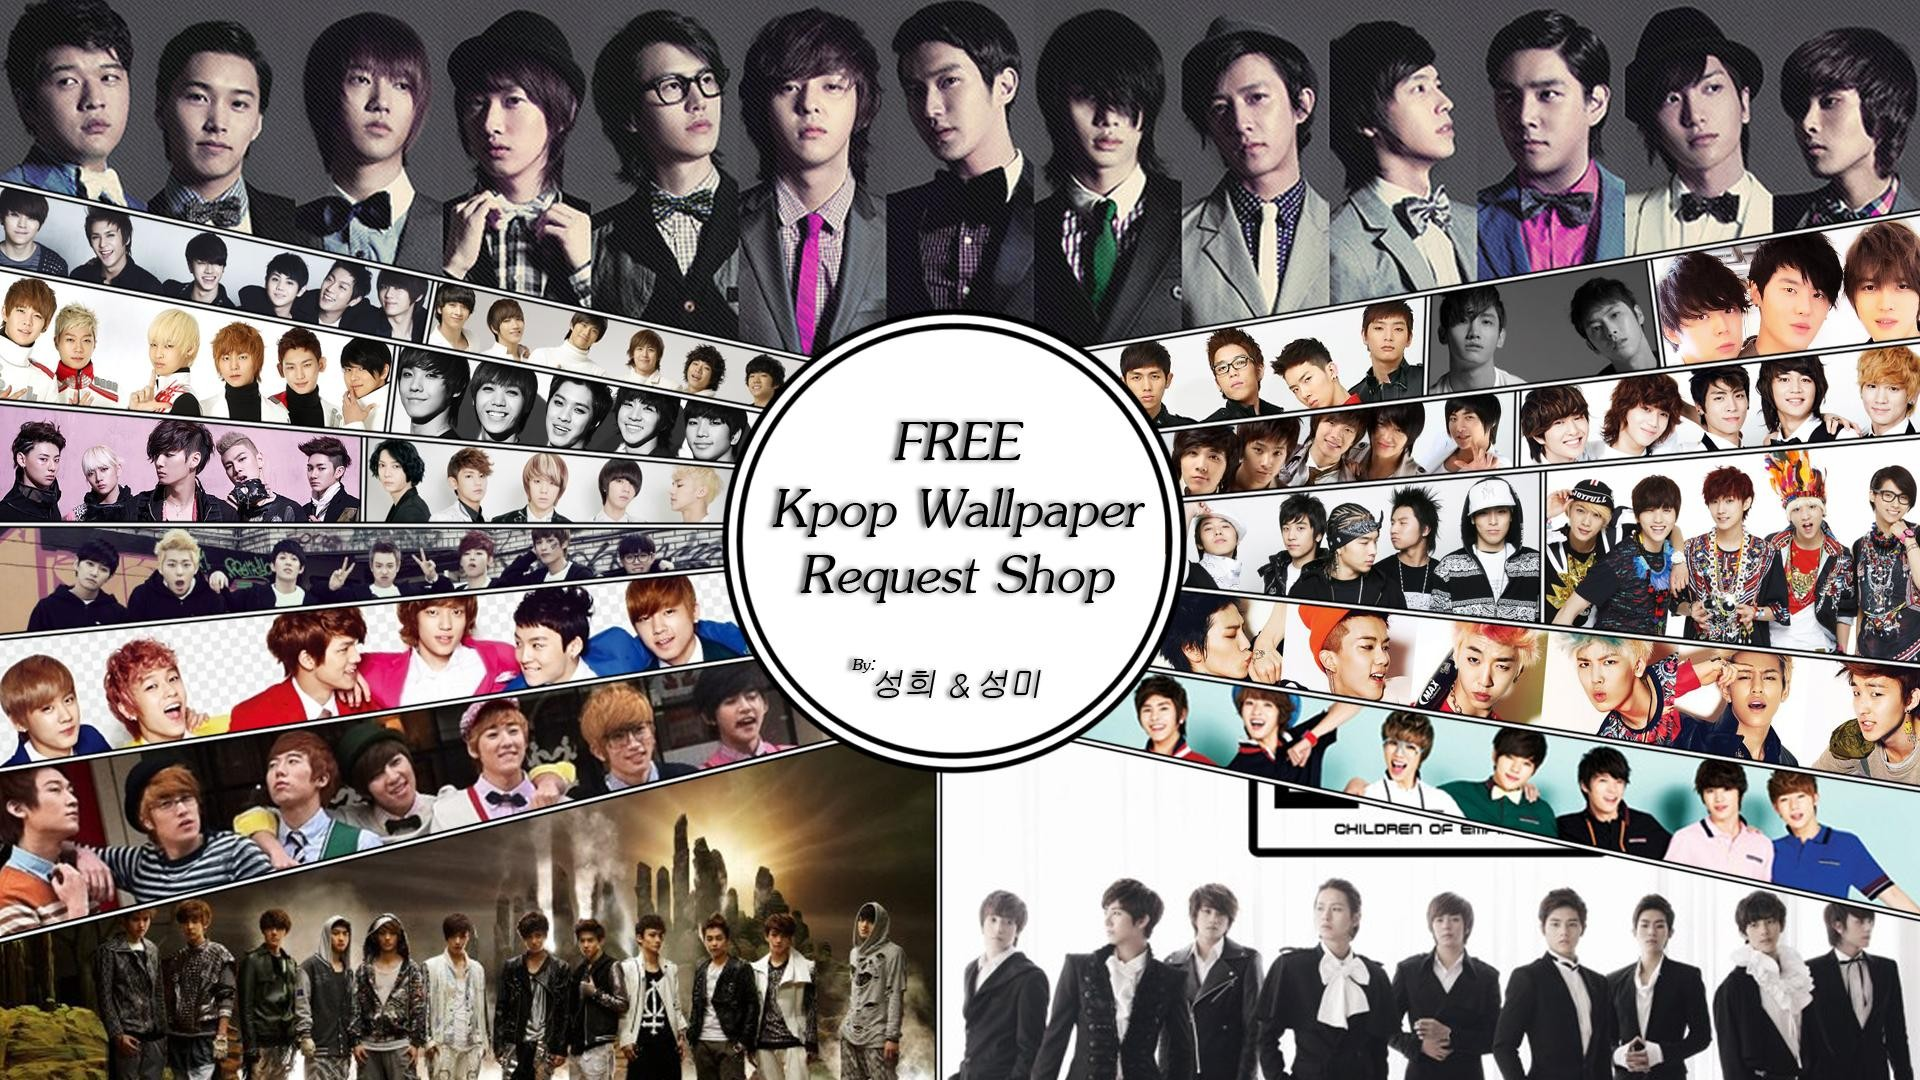 Kpop Wallpaper 1 Download Free Beautiful Full HD Backgrounds For